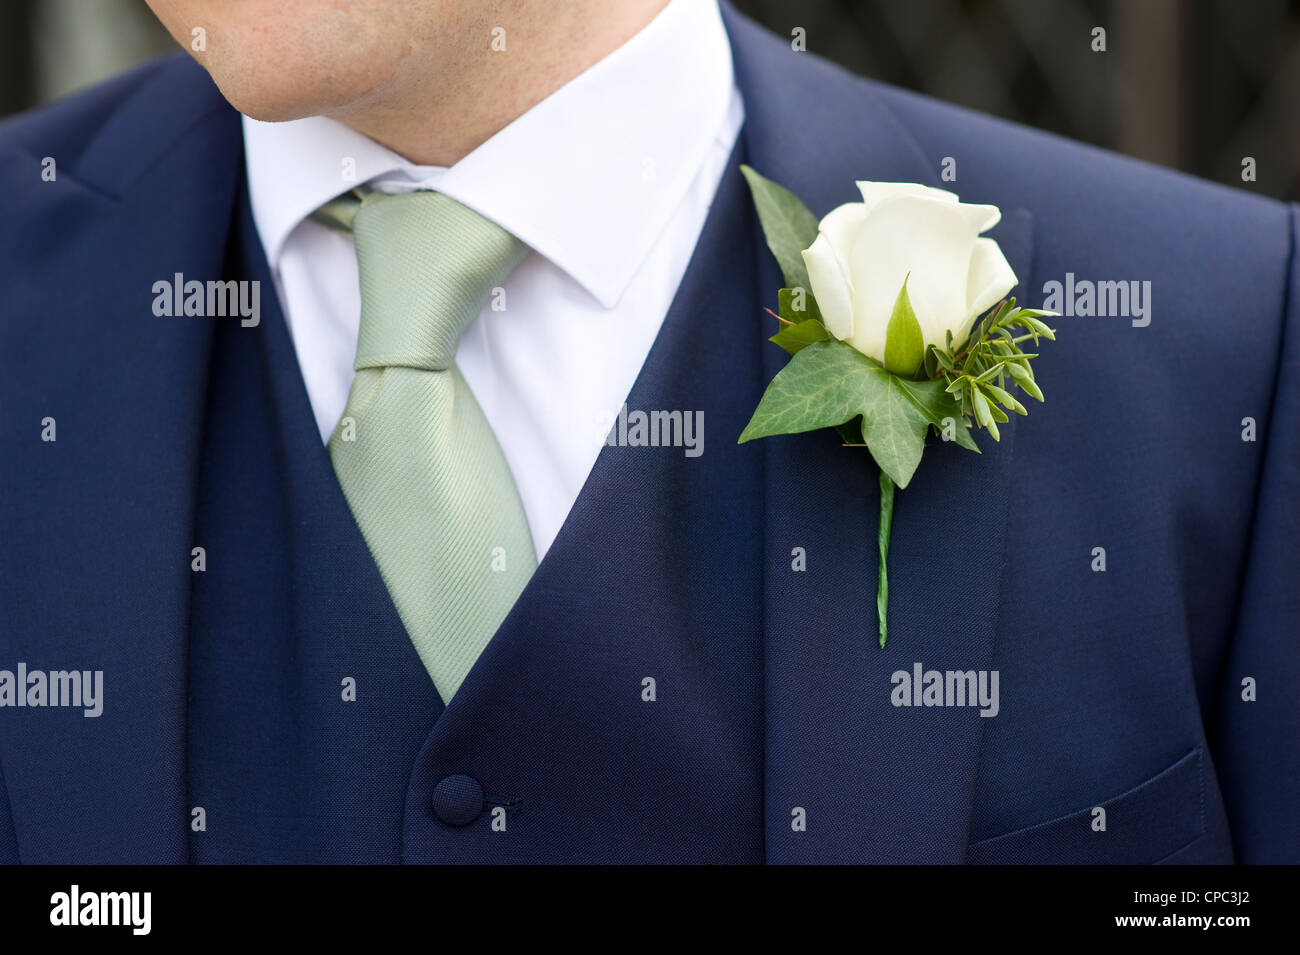 How To Make Wedding Buttonholes: Man At A Wedding Wearing A Floral Buttonhole Stock Photo